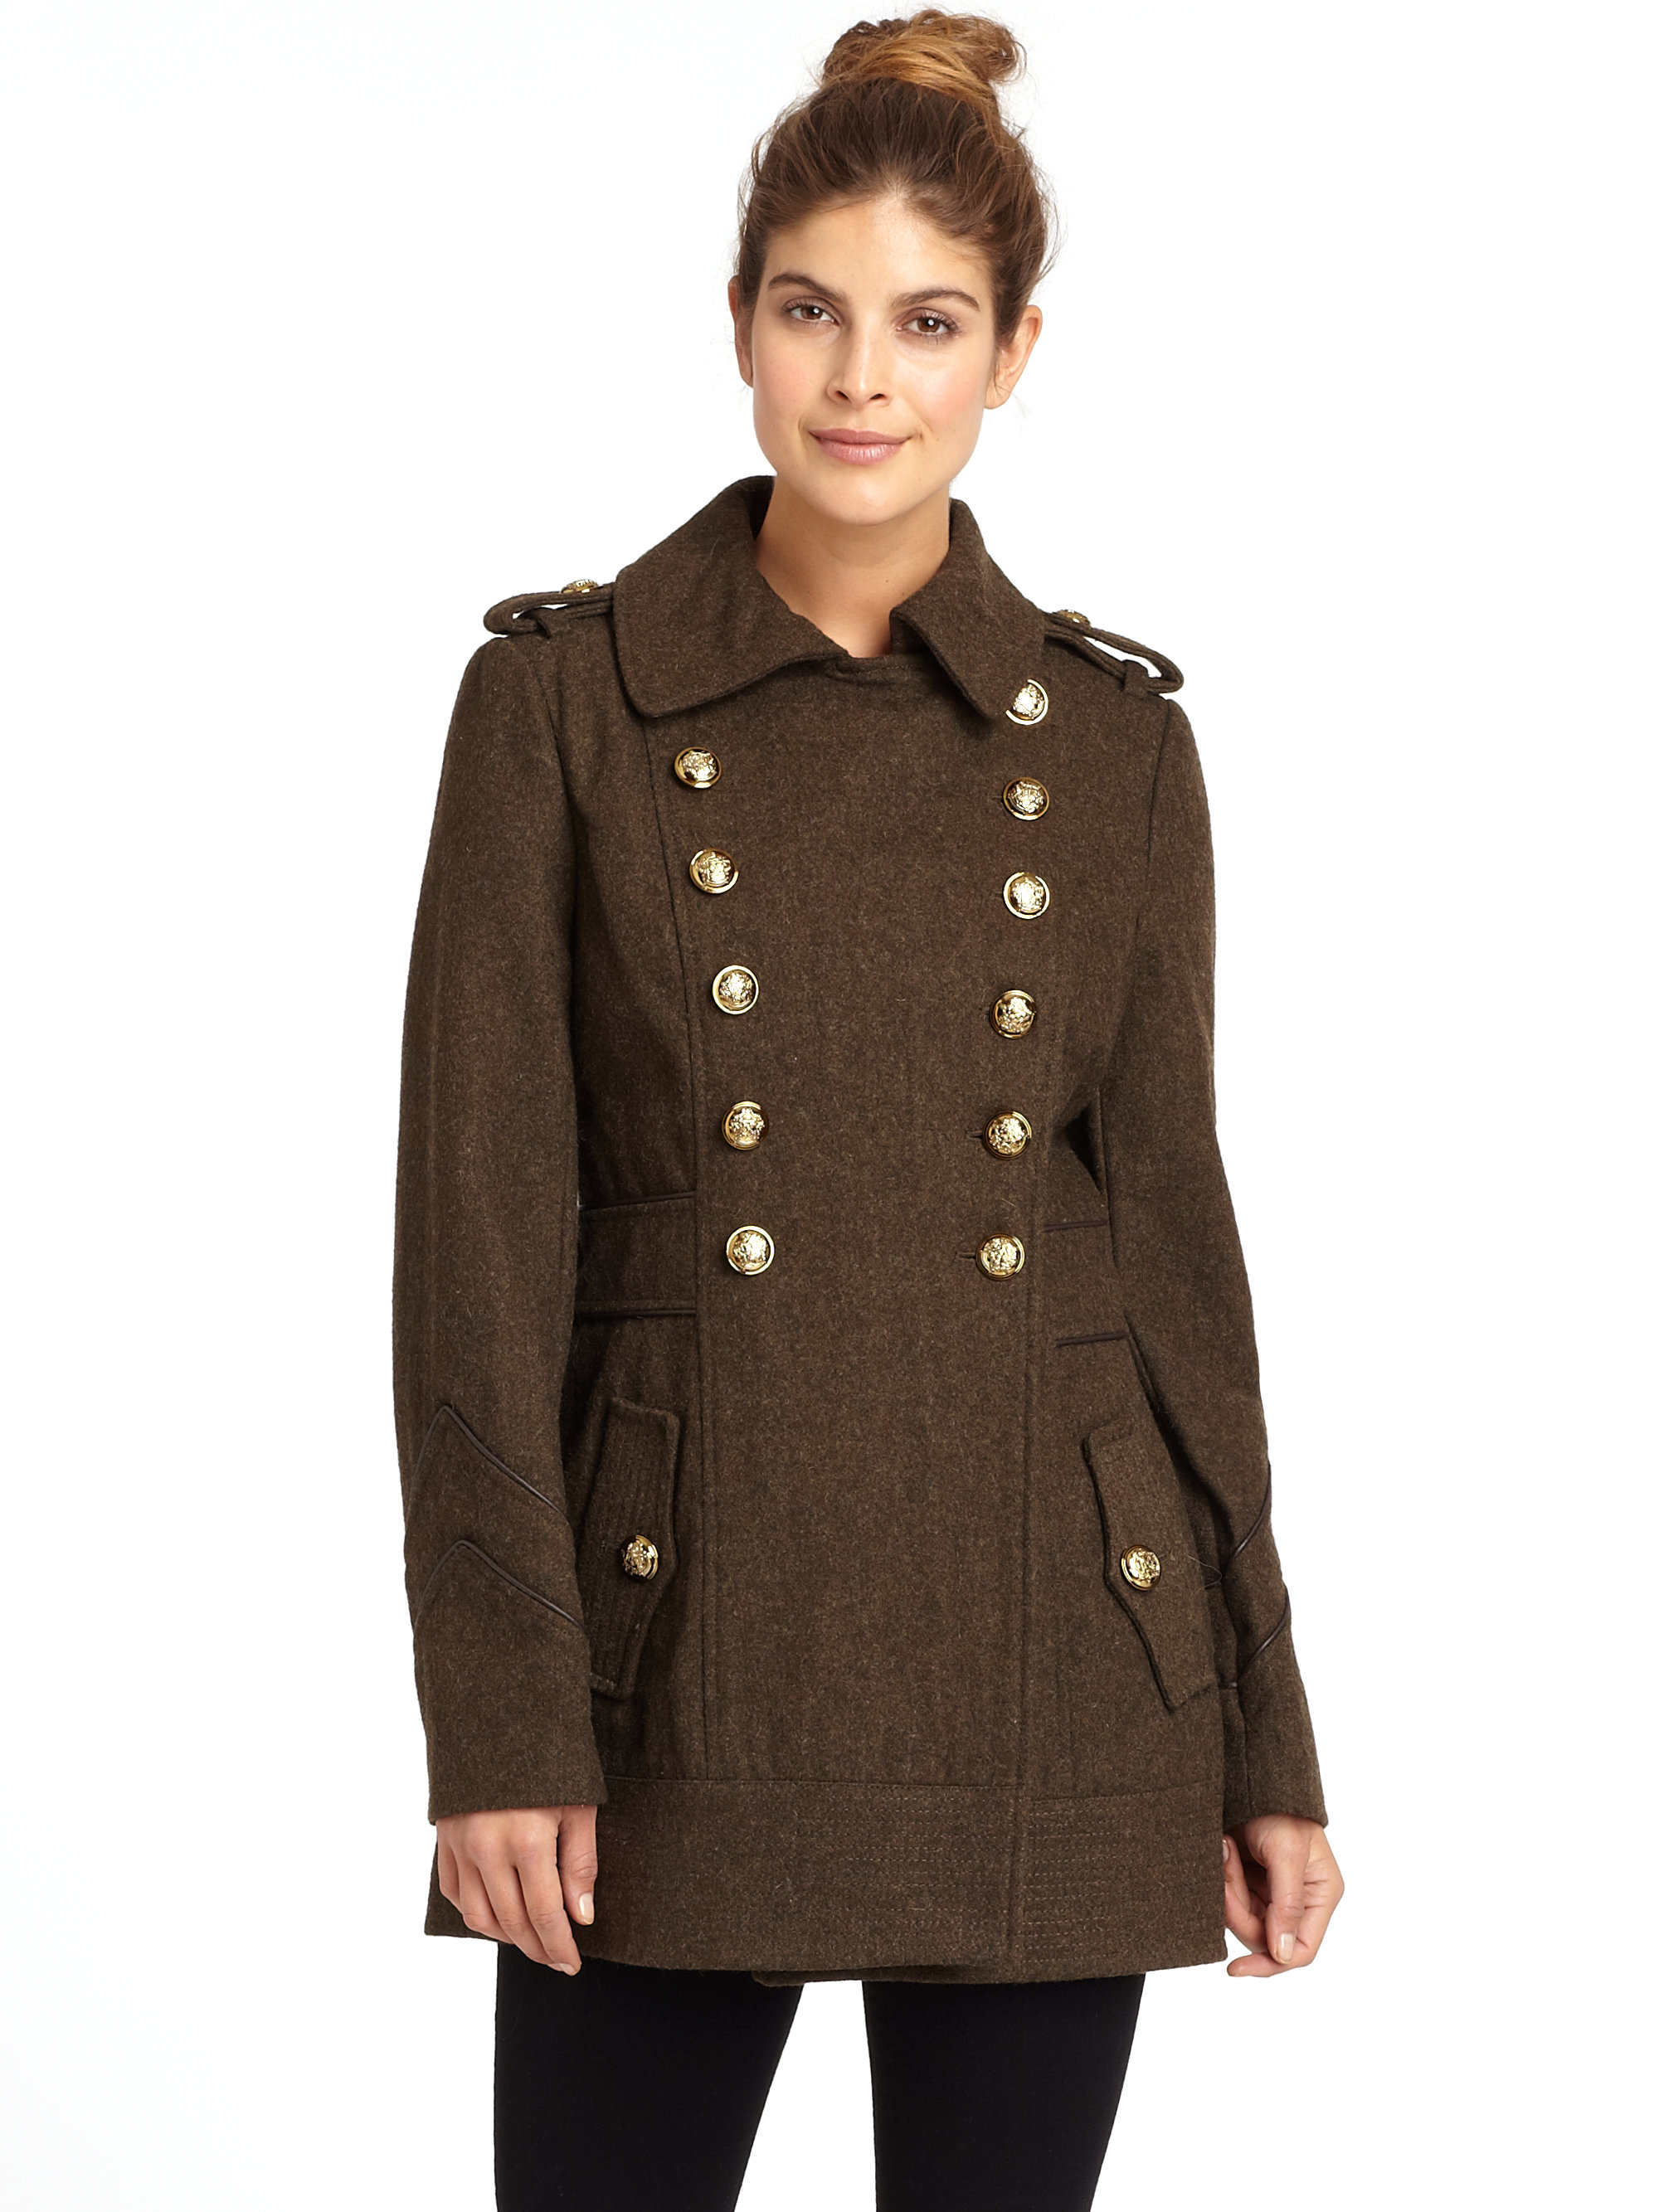 Miss sixty Missy Goldtone Button Peacoat in Green | Lyst